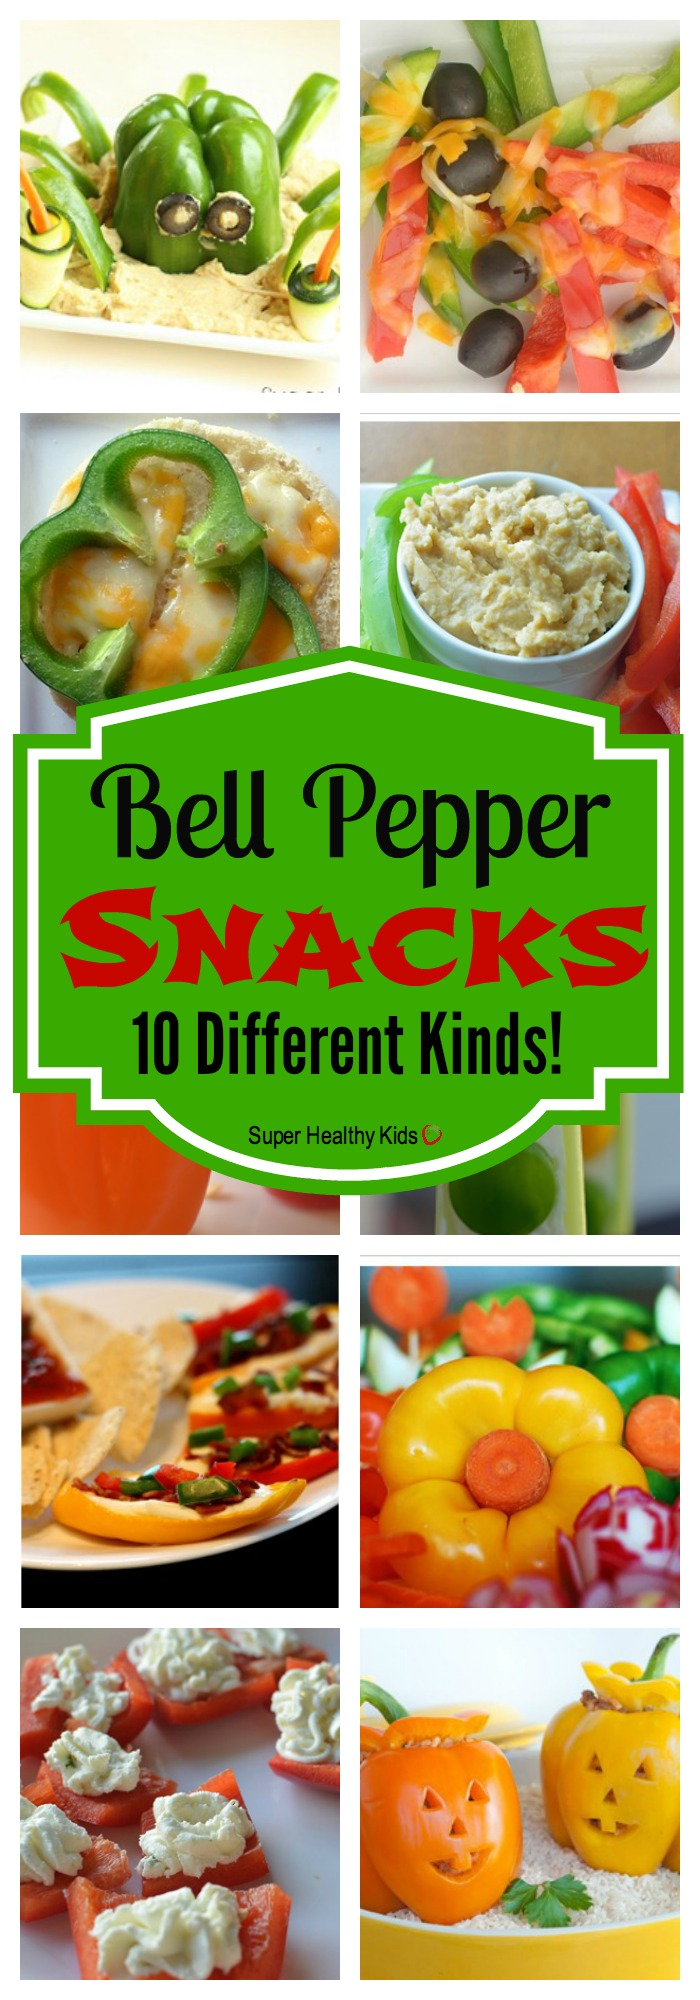 FOOD - 10 Bell Pepper Snacks. Bell peppers are super versatile...here are our 10 favorite snacks! http://www.superhealthykids.com/10-delicious-snacks-with-bell-peppers/